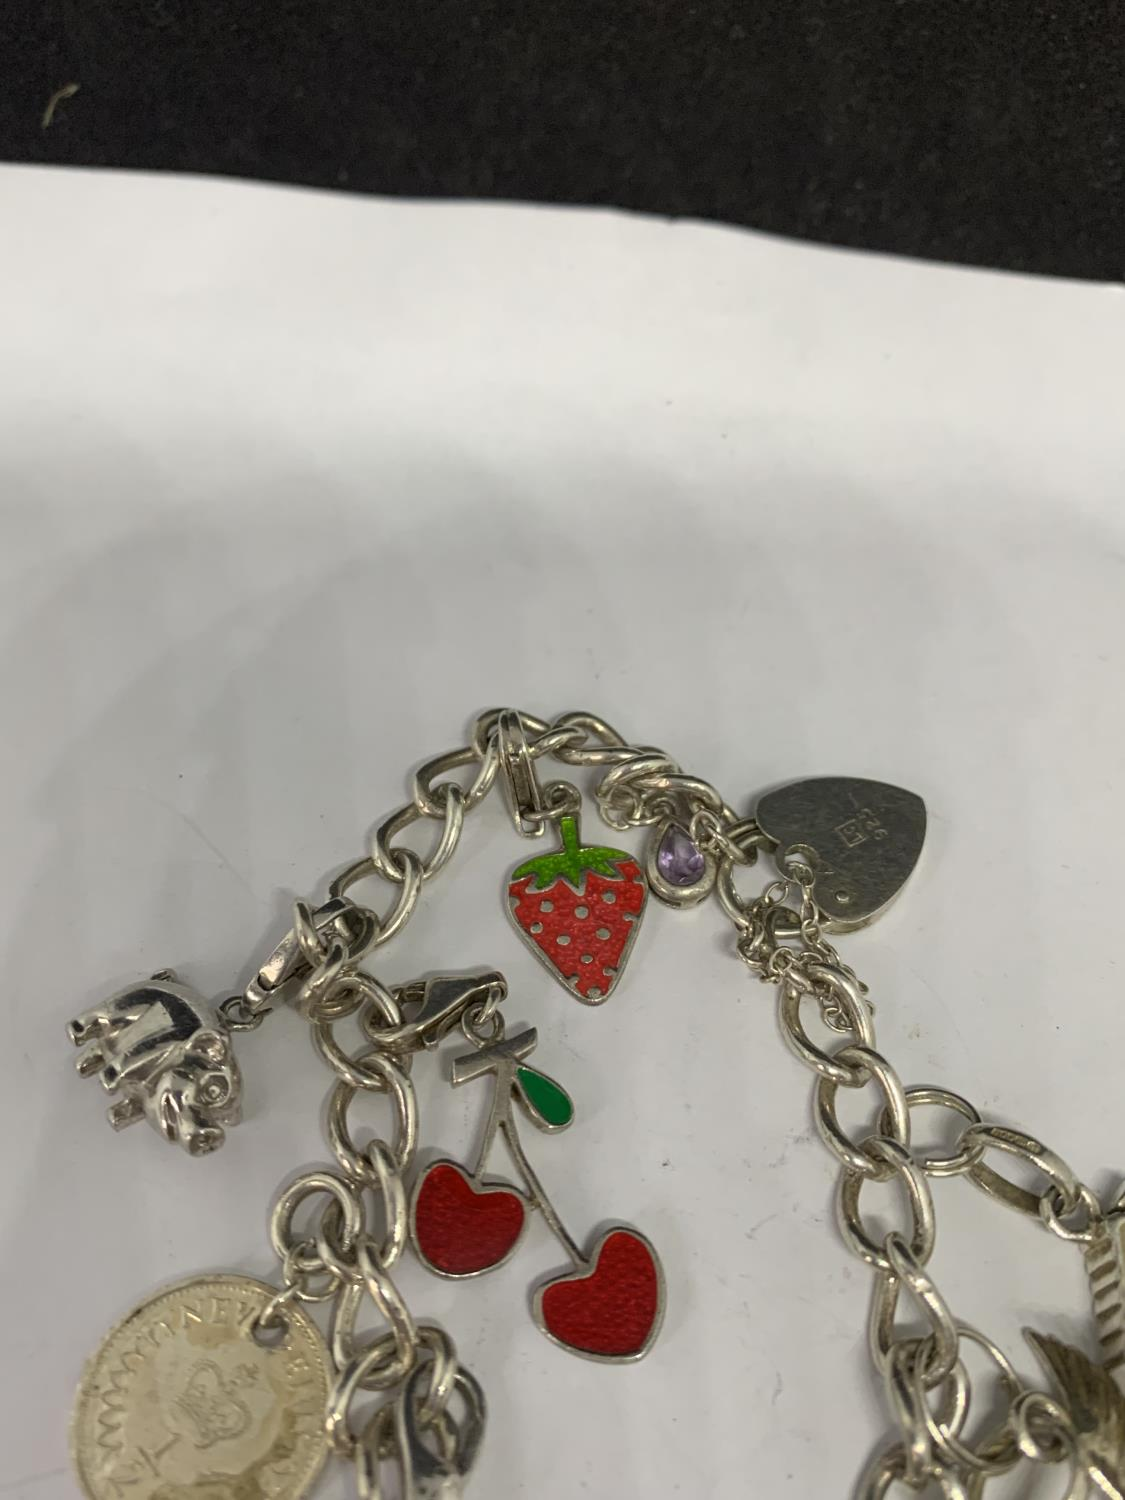 A HEAVY SILVER CHARM BRACELET WITH THIRTEEN CHARMS TO INCLUDE A STRAWBERRY, CHERRIES, DOVE ETC - Image 3 of 4